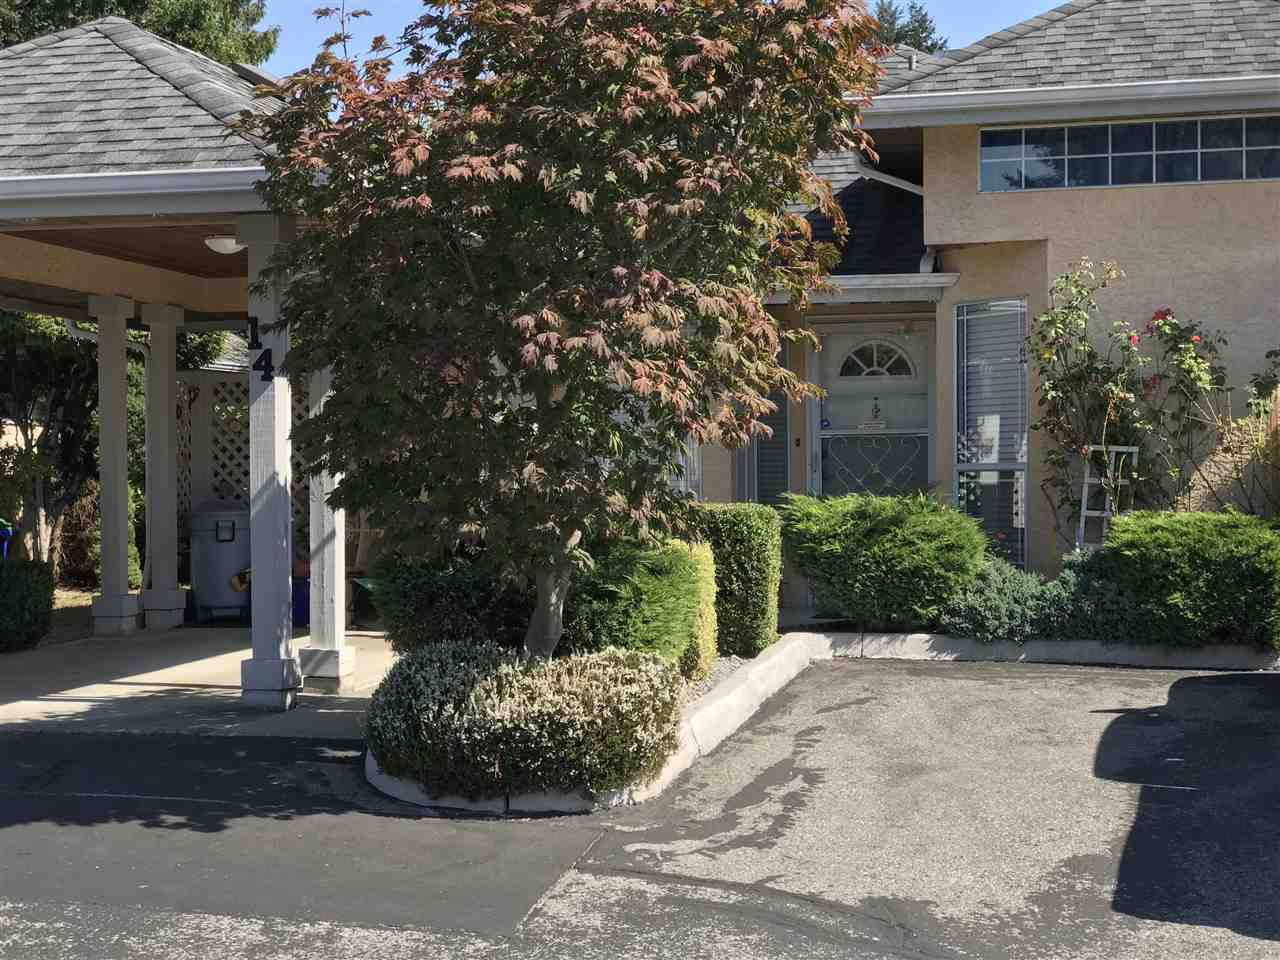 """Main Photo: 14 11950 LAITY Street in Maple Ridge: West Central Townhouse for sale in """"THE MAPLES"""" : MLS®# R2315847"""